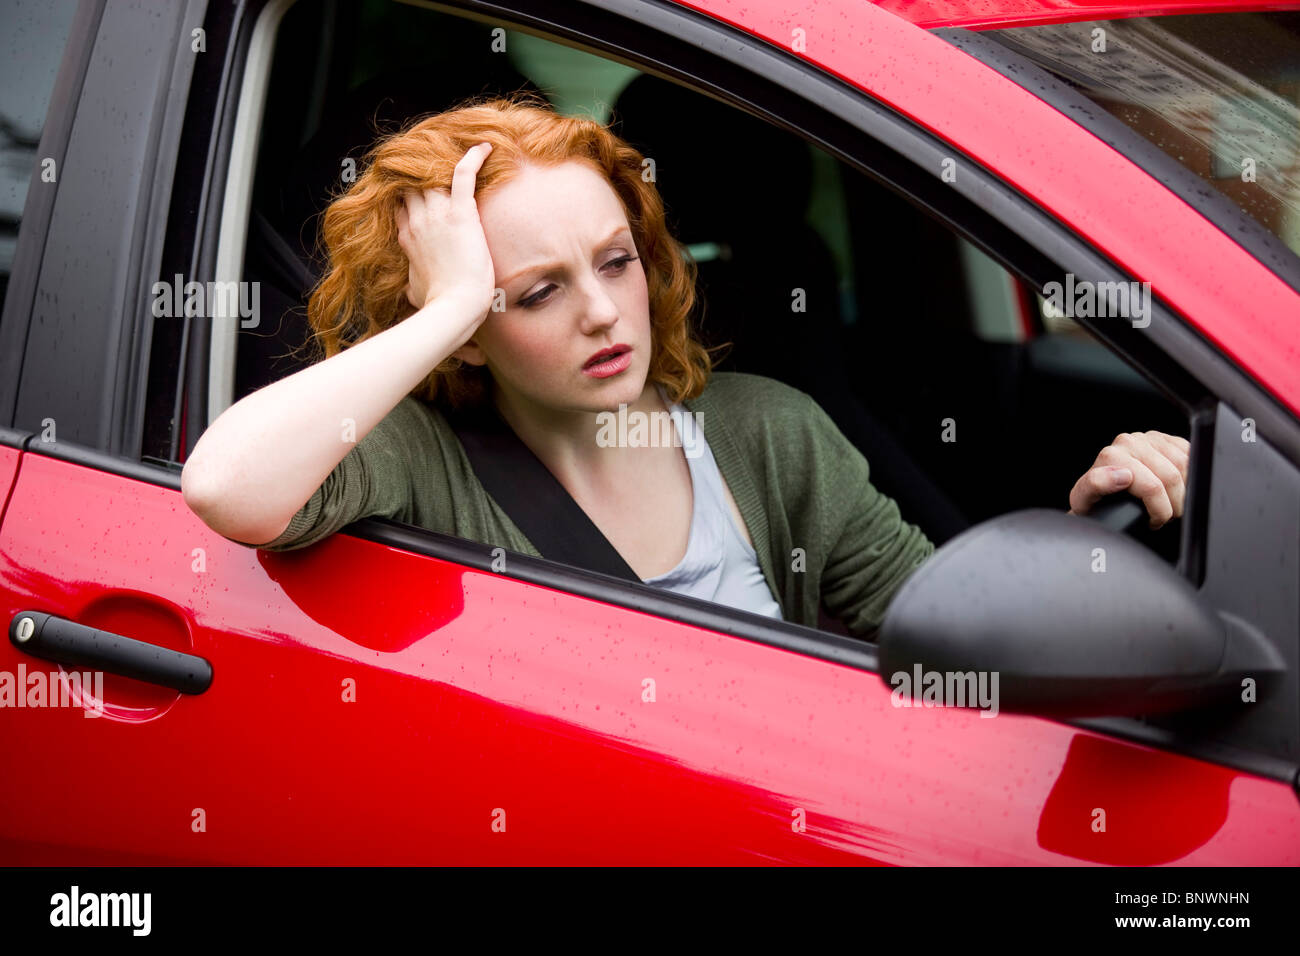 Girl sat in car - Stock Image